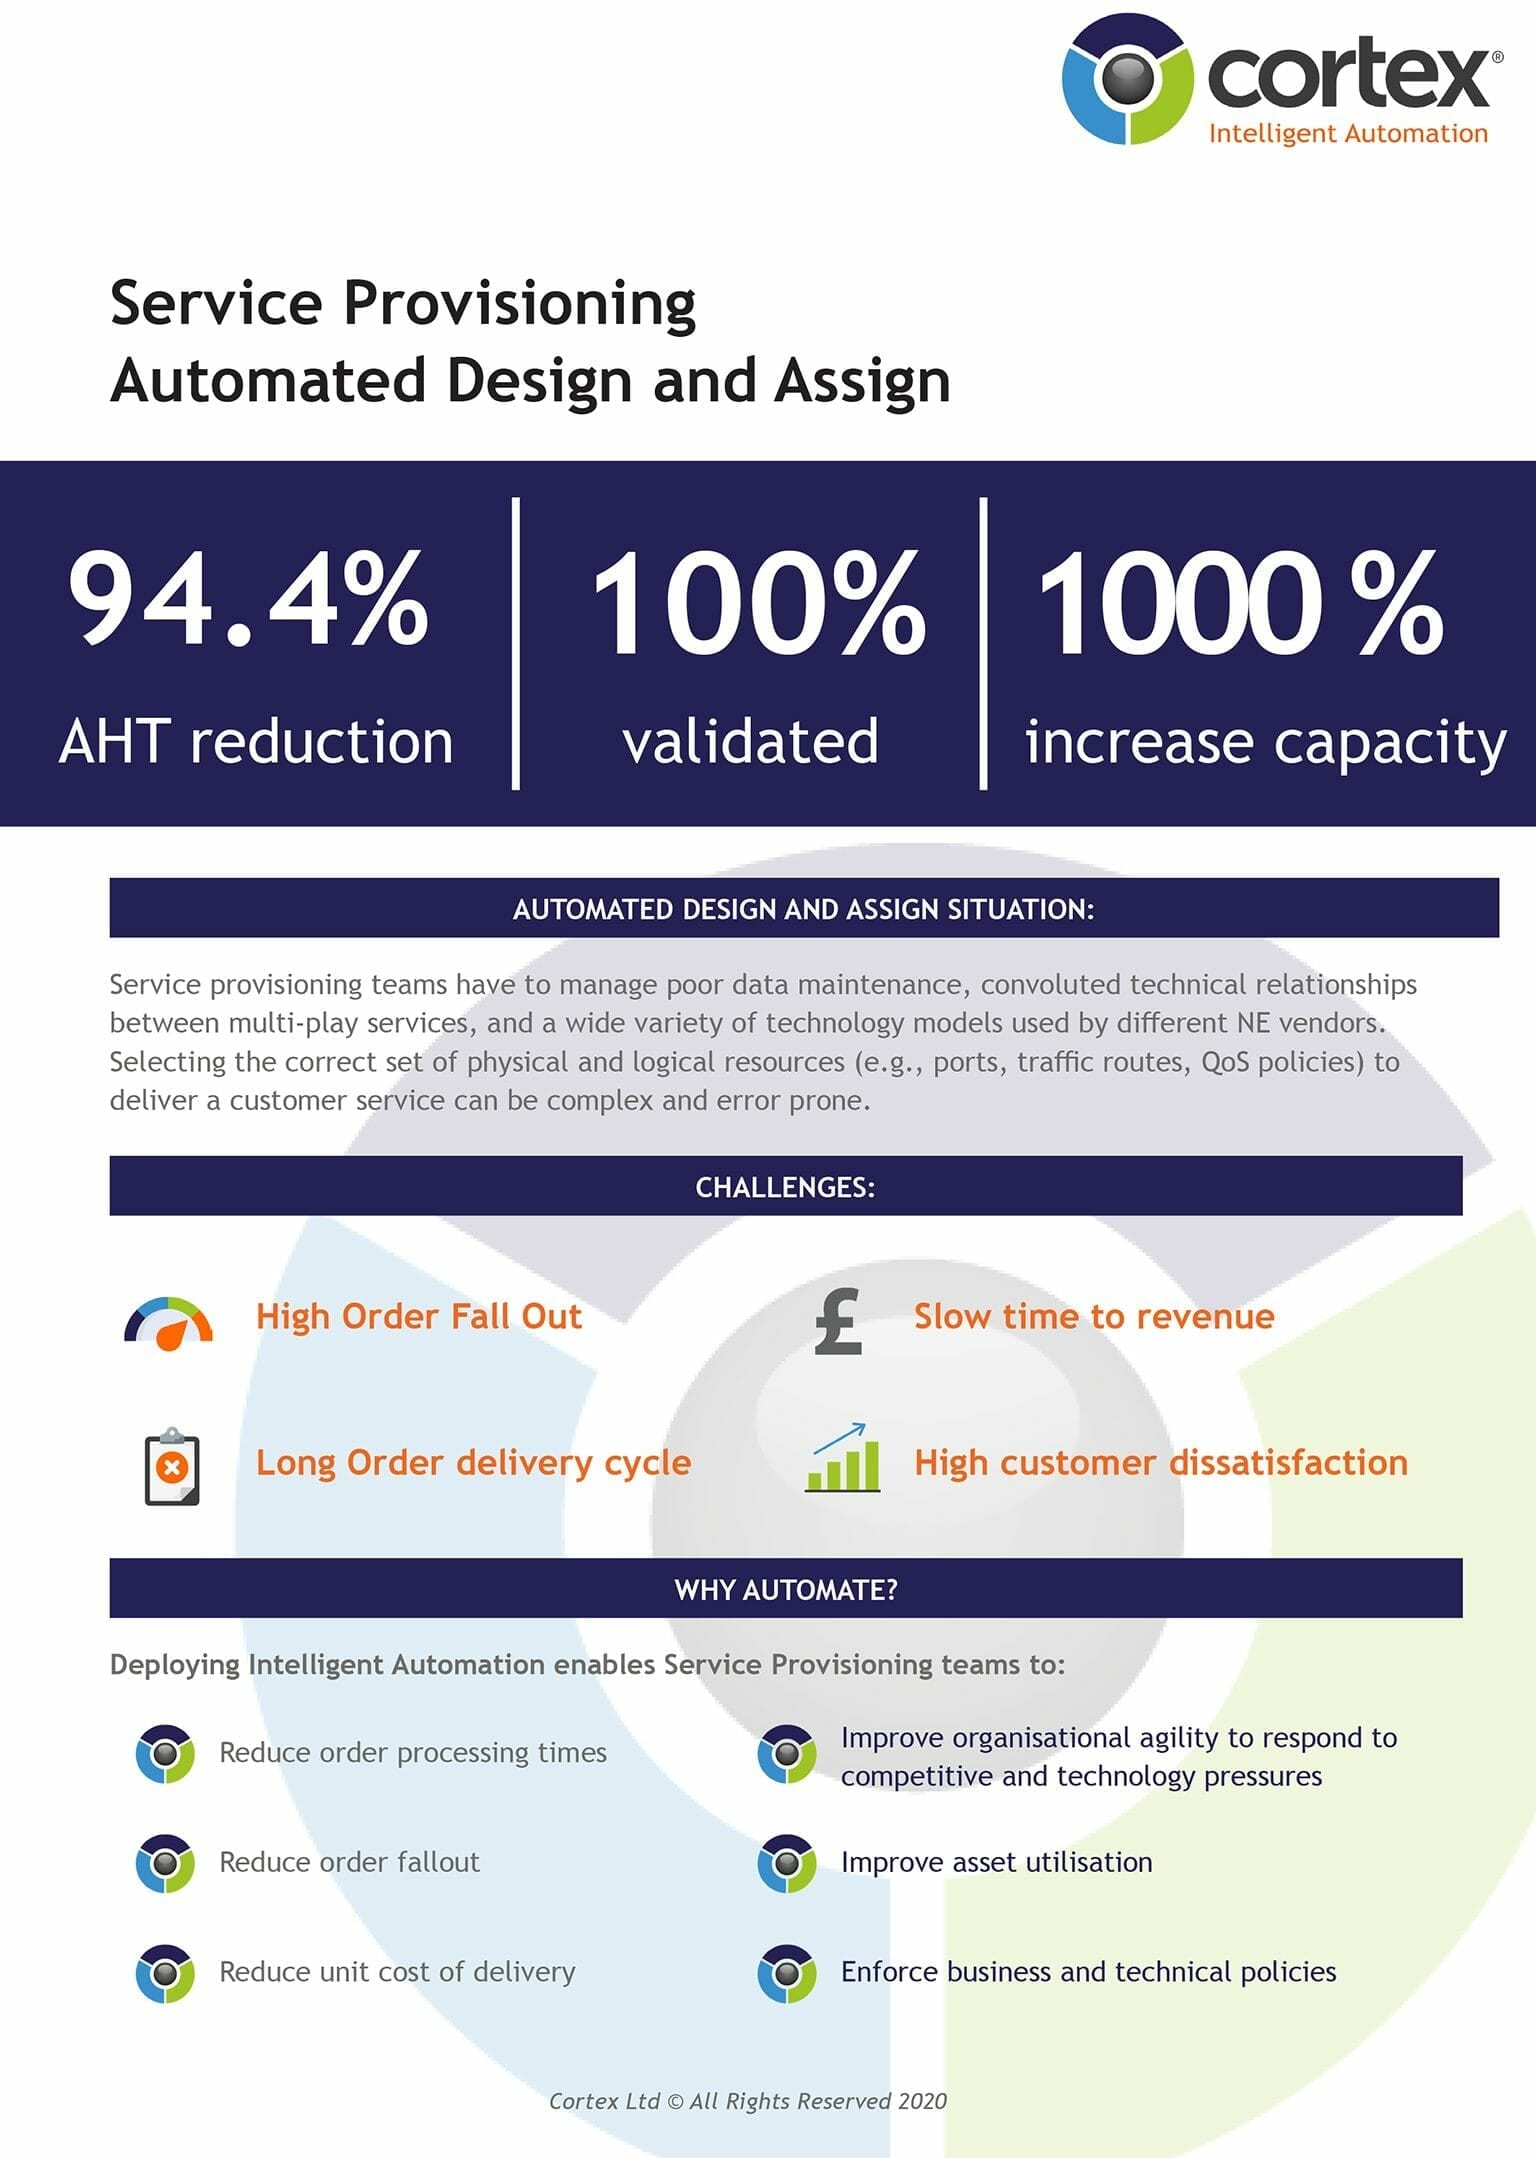 Automated Design and Assign